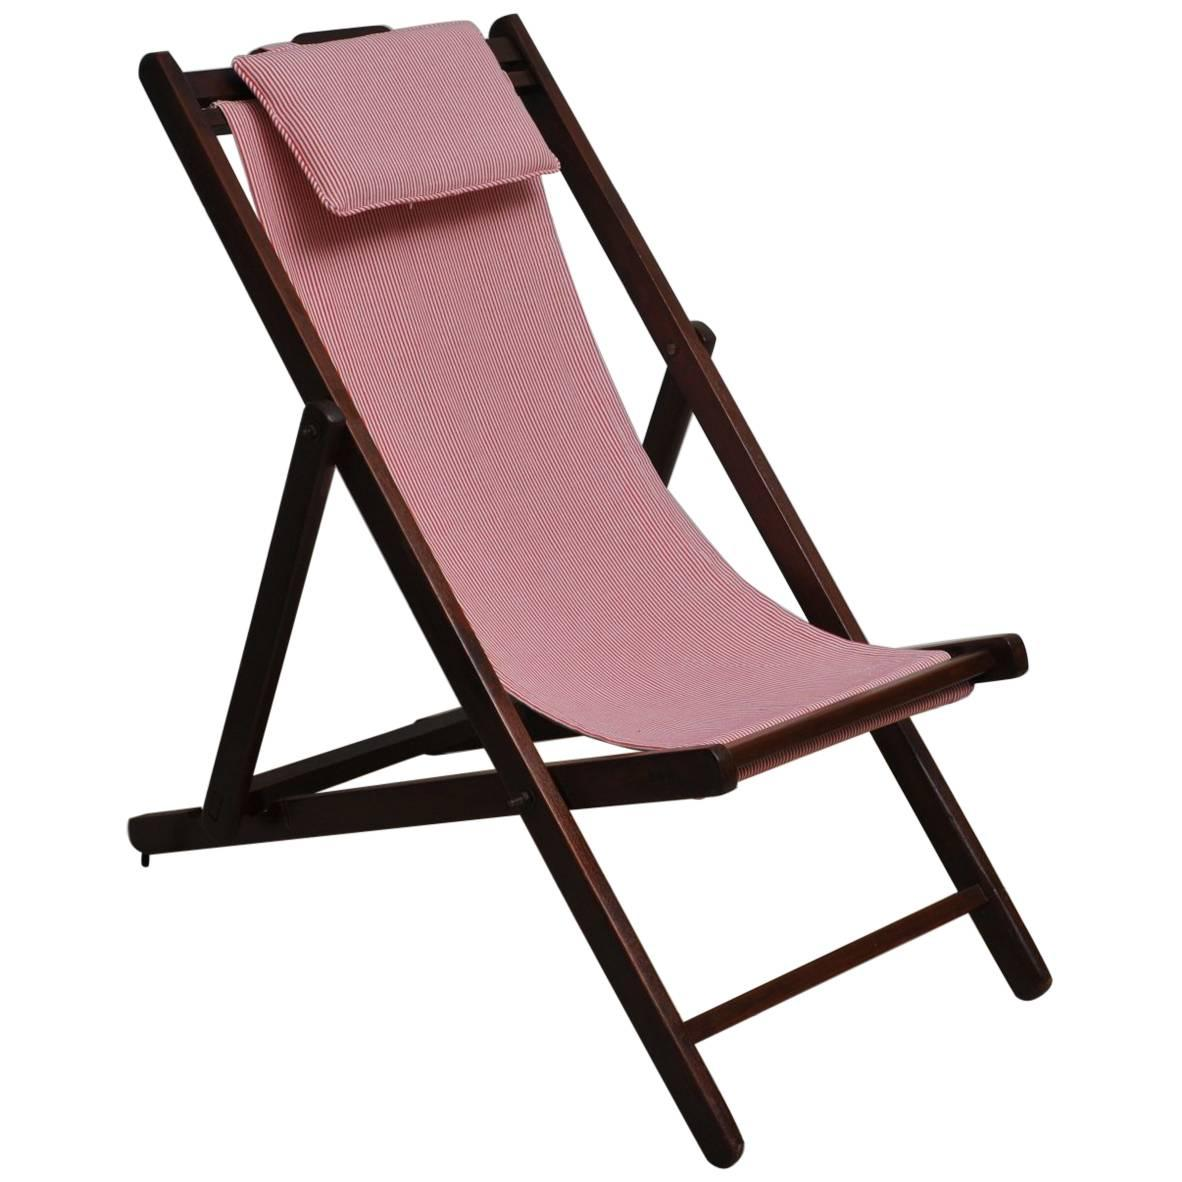 Folding Lounge Chair Folding And Adjustable Sling Back Lounge Chair 1940s British Campaign